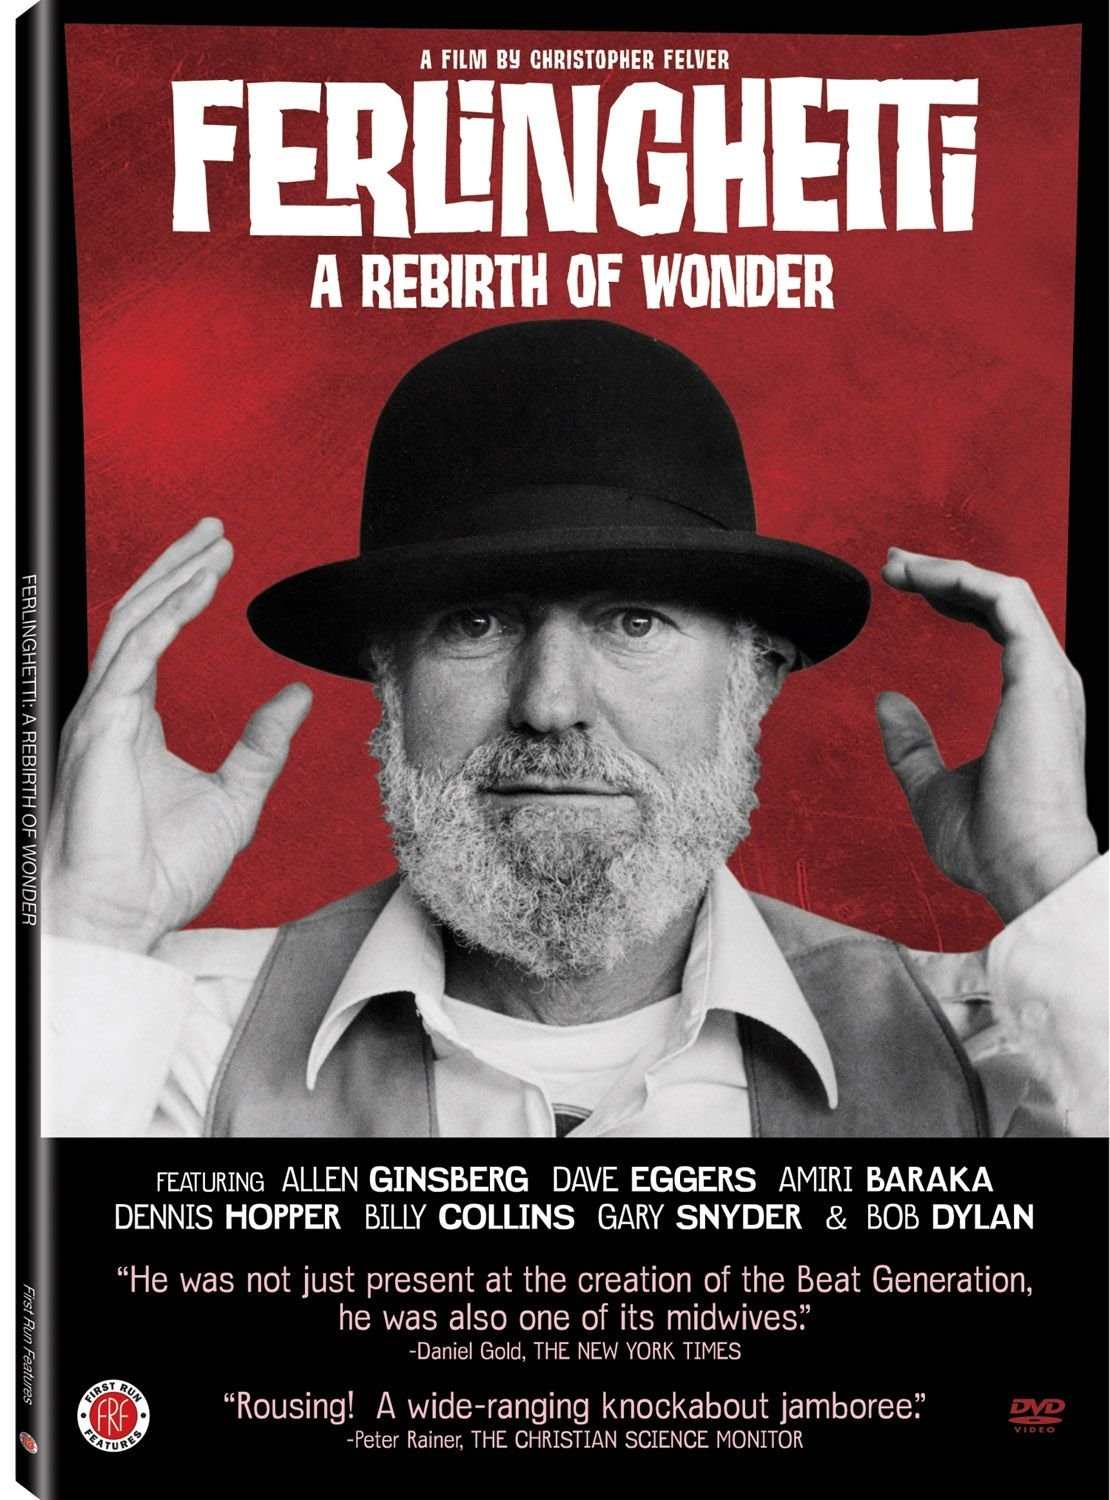 DVD : Dave Eggers - Ferlinghetti: A Rebirth Of Wonder (Widescreen)